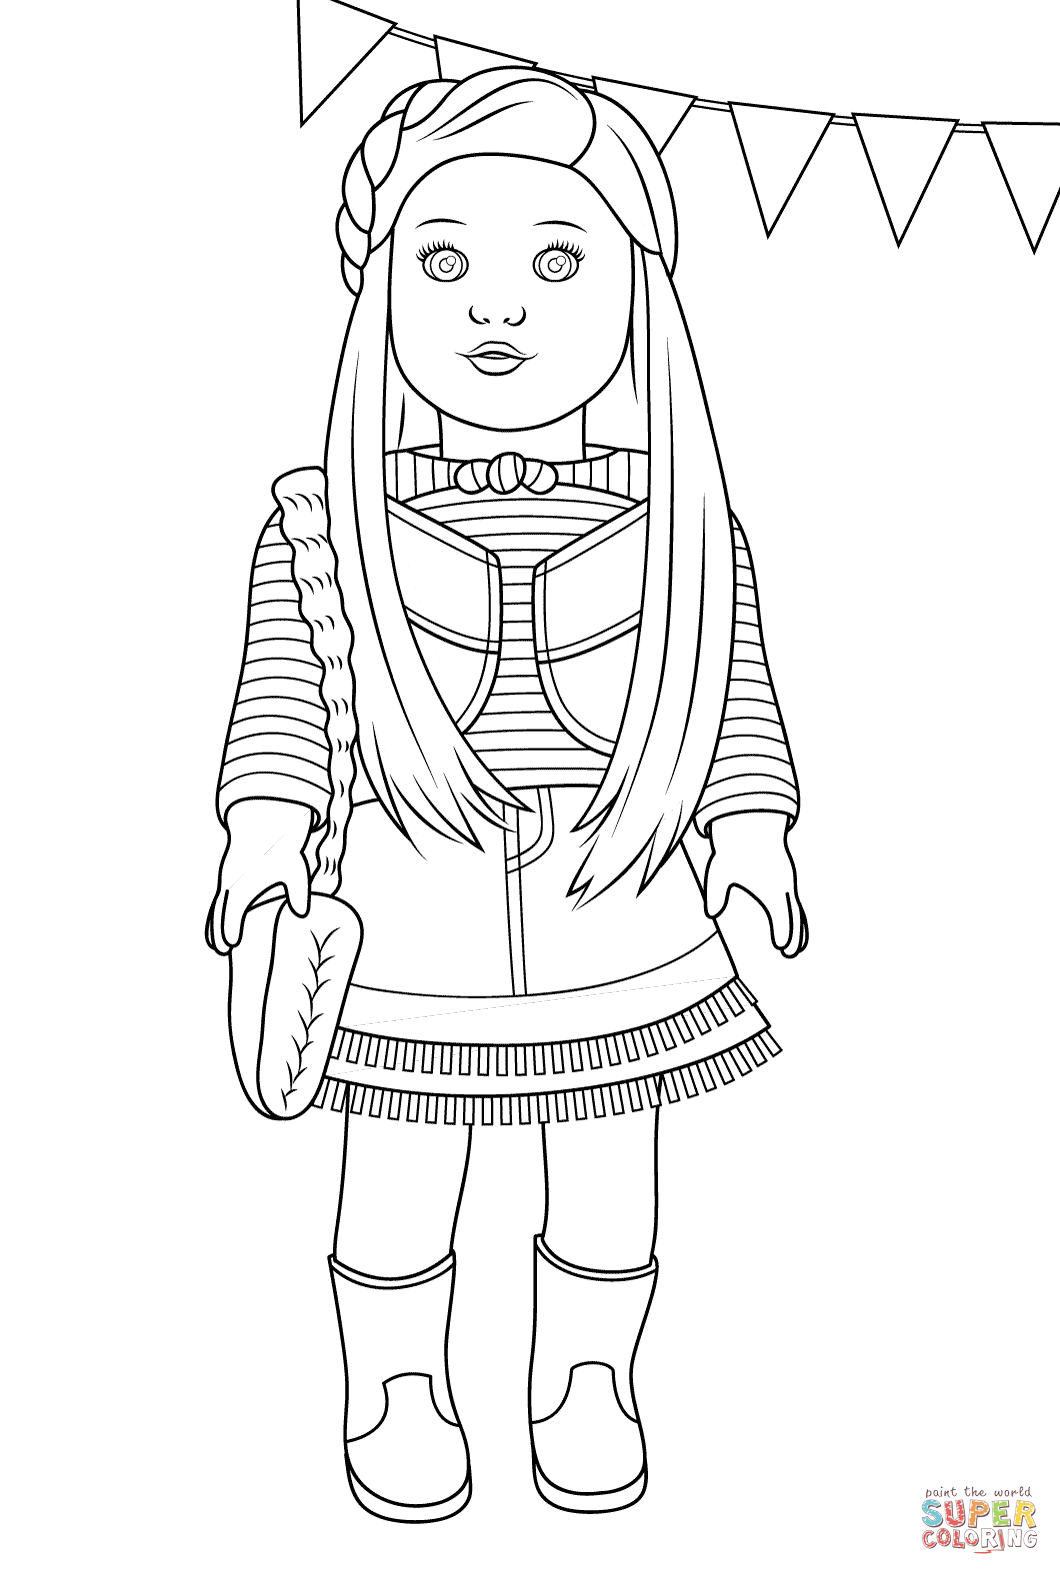 american girl doll coloring pages to download and print for free - Coloring Page Of A Girl